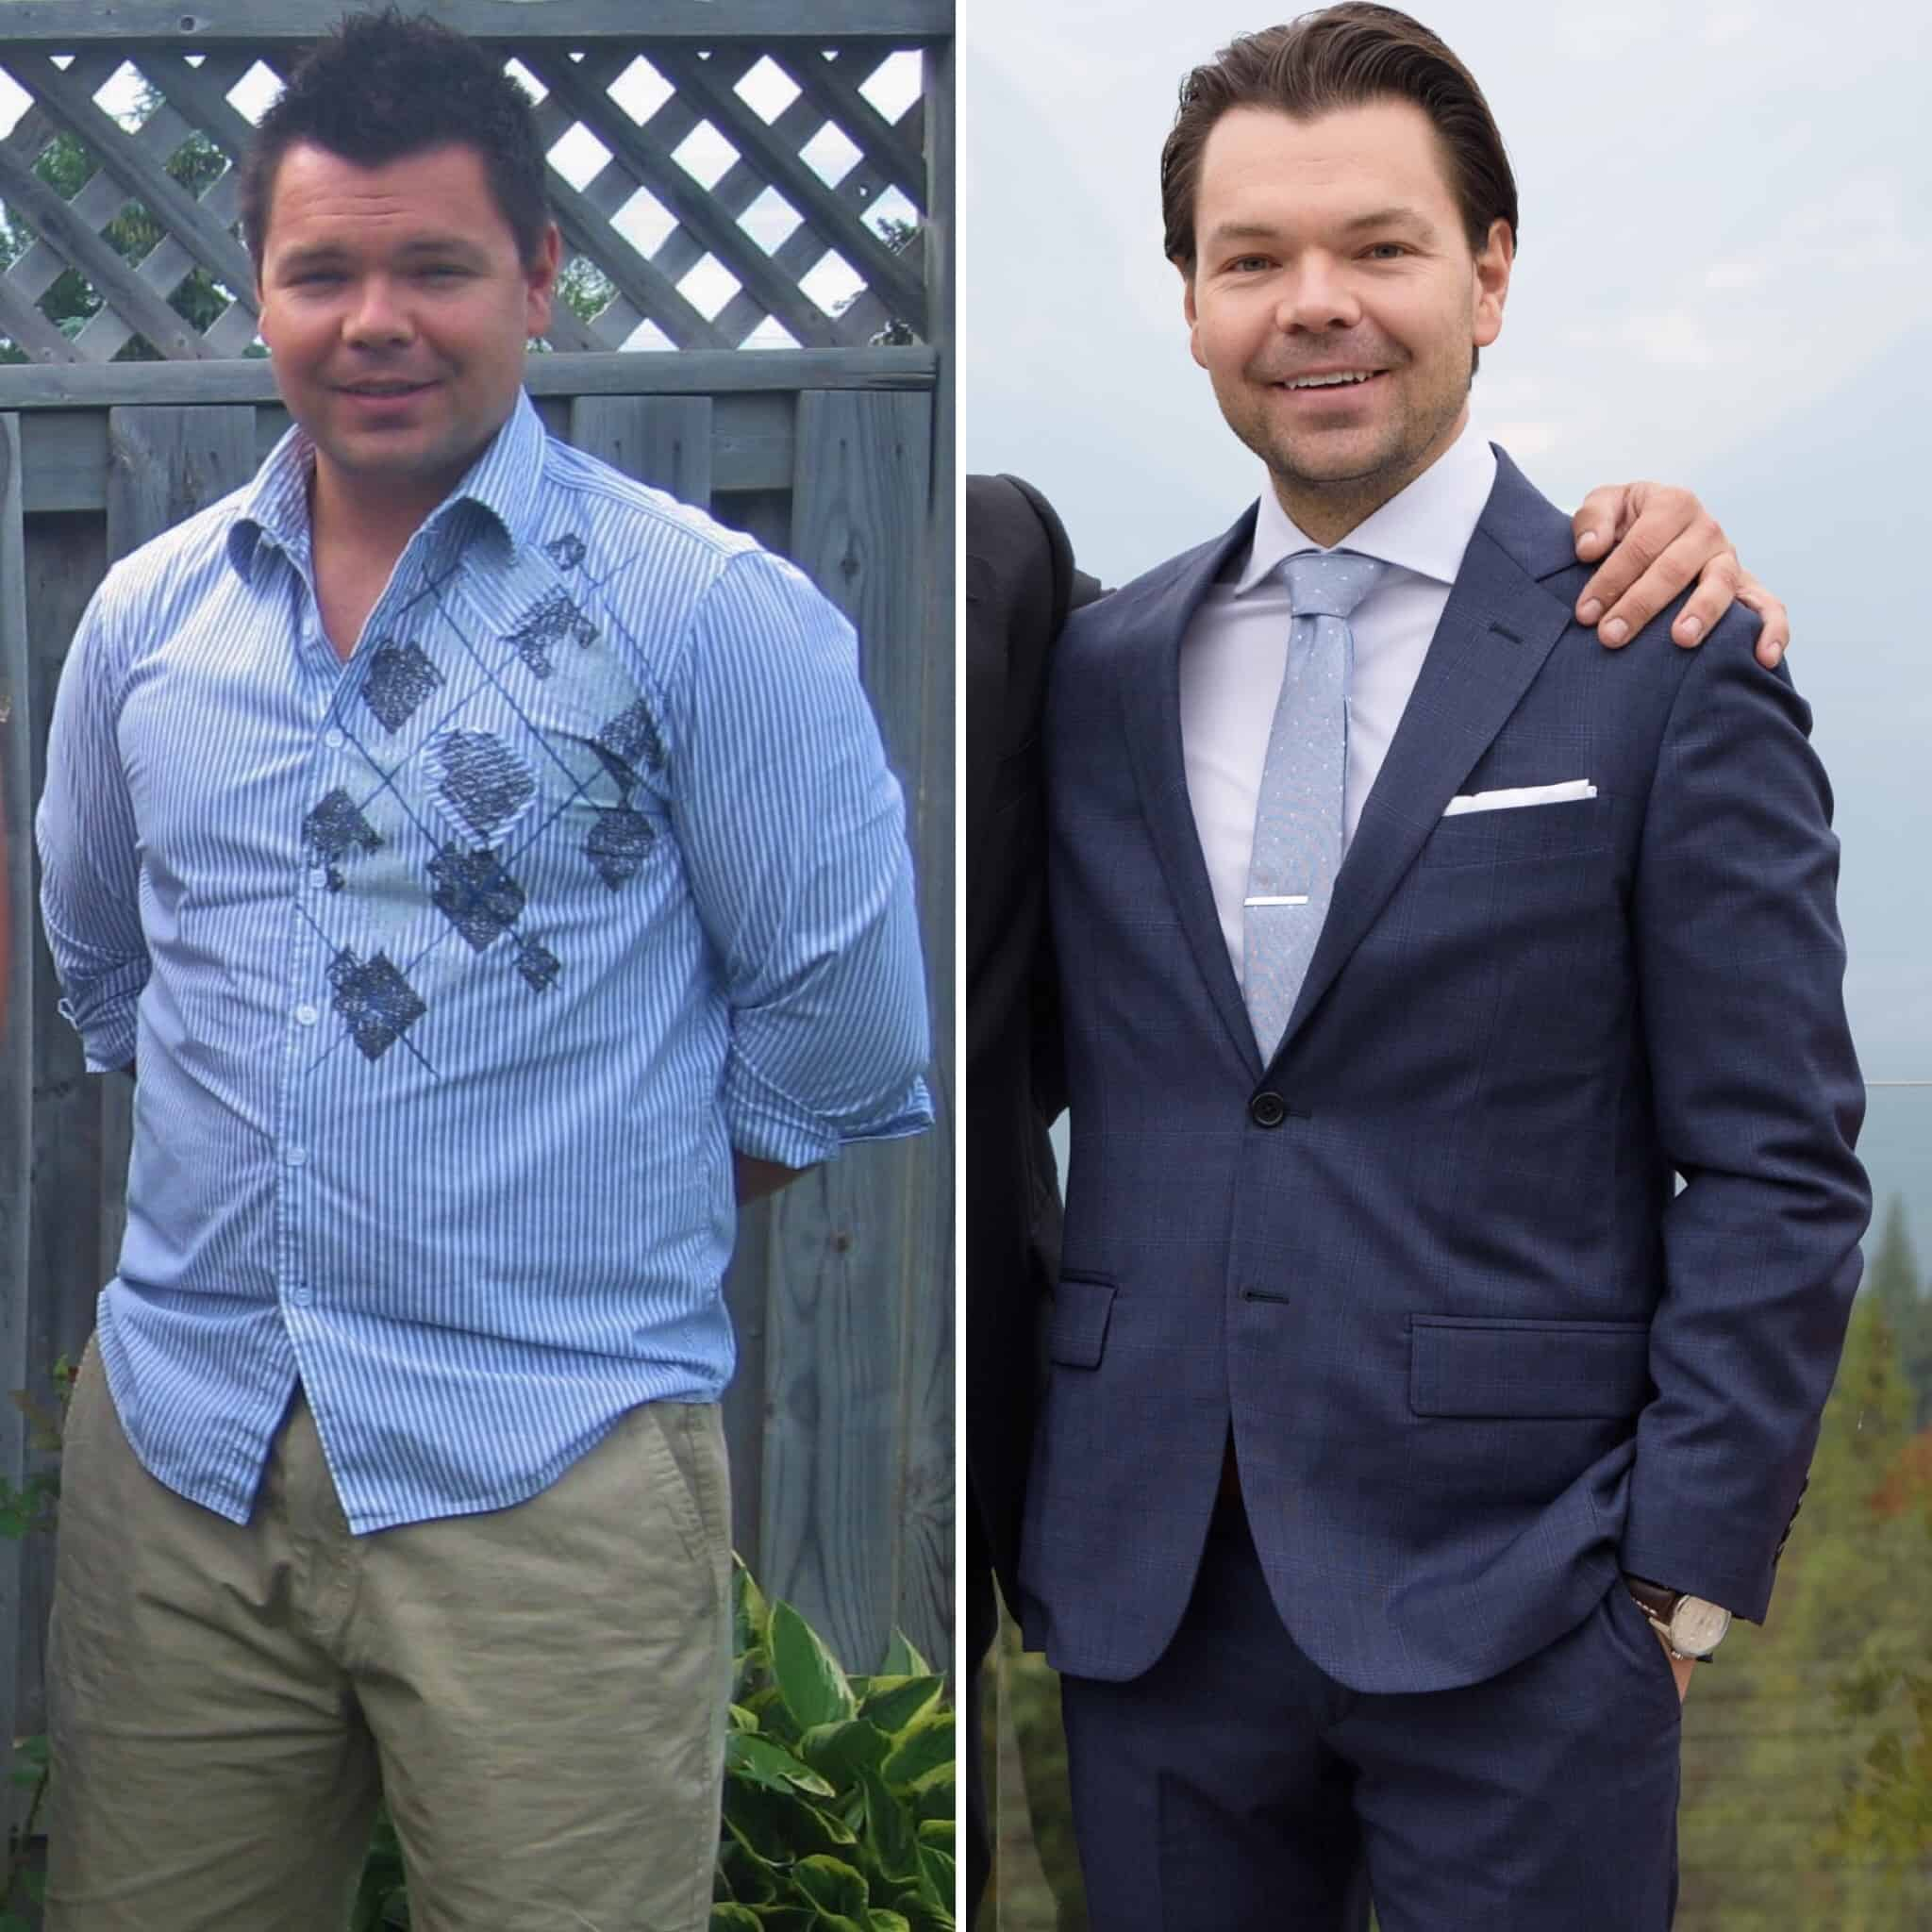 40lbs lost on my low carb diet keto journey!